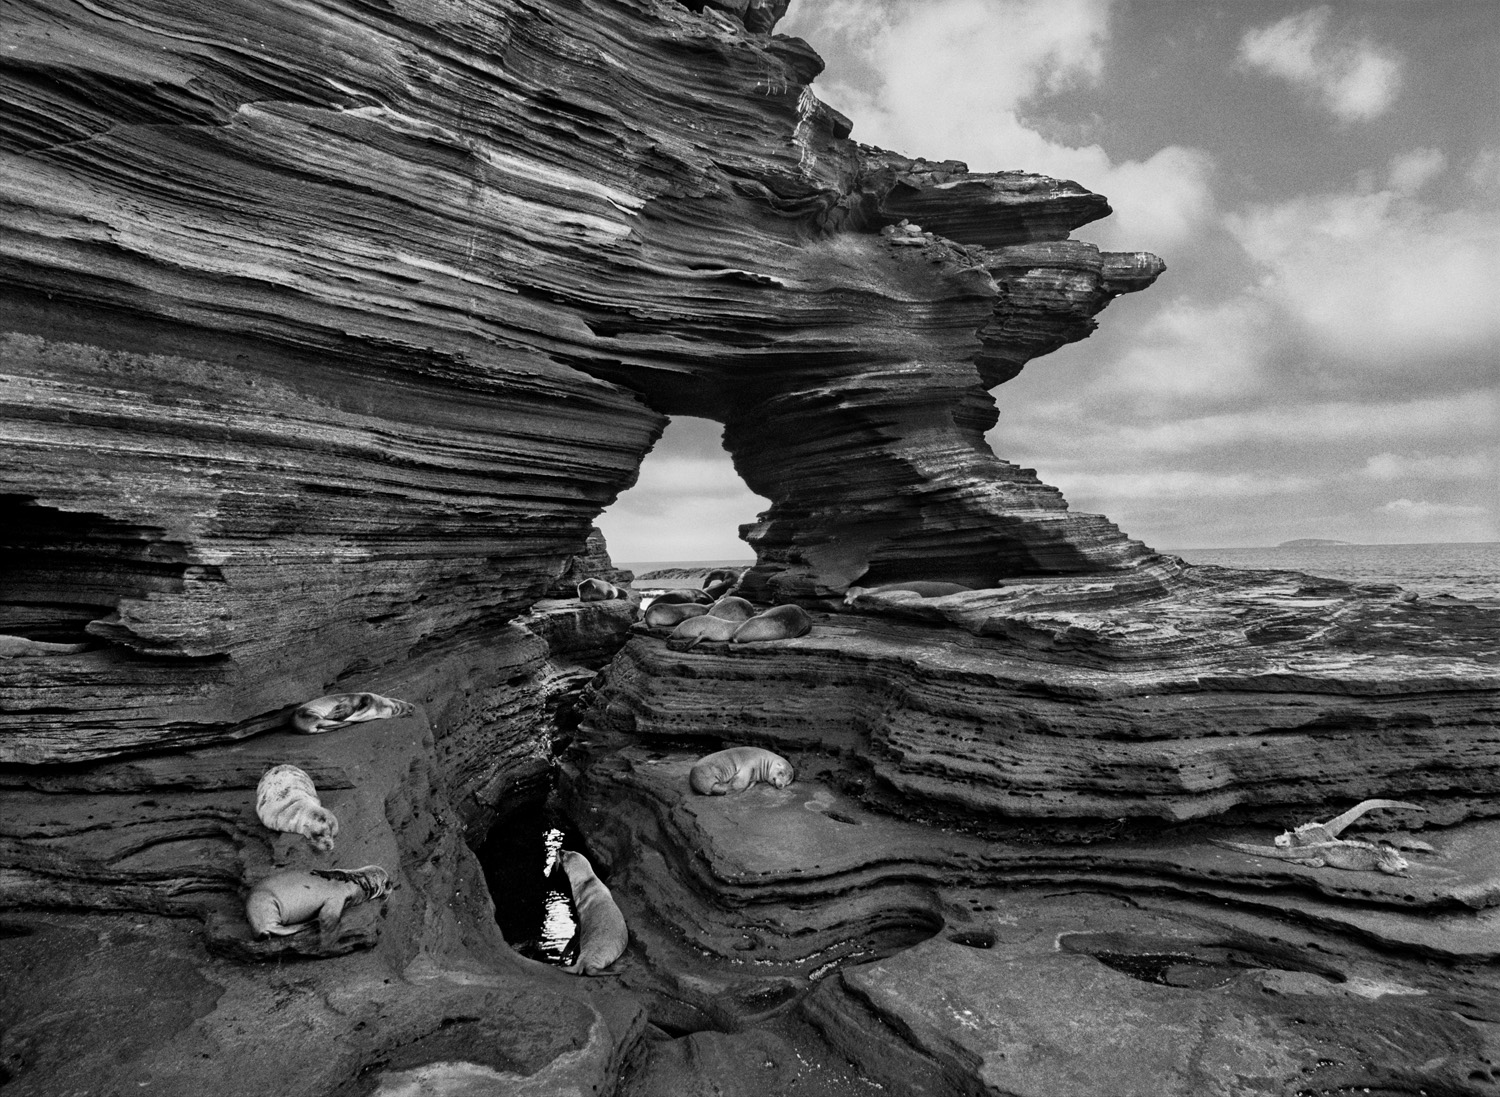 Sea lions rest on shelves of compacted volcanic ash on Santiago Island, part of the Galapagos chain made famous by Charles Darwin.